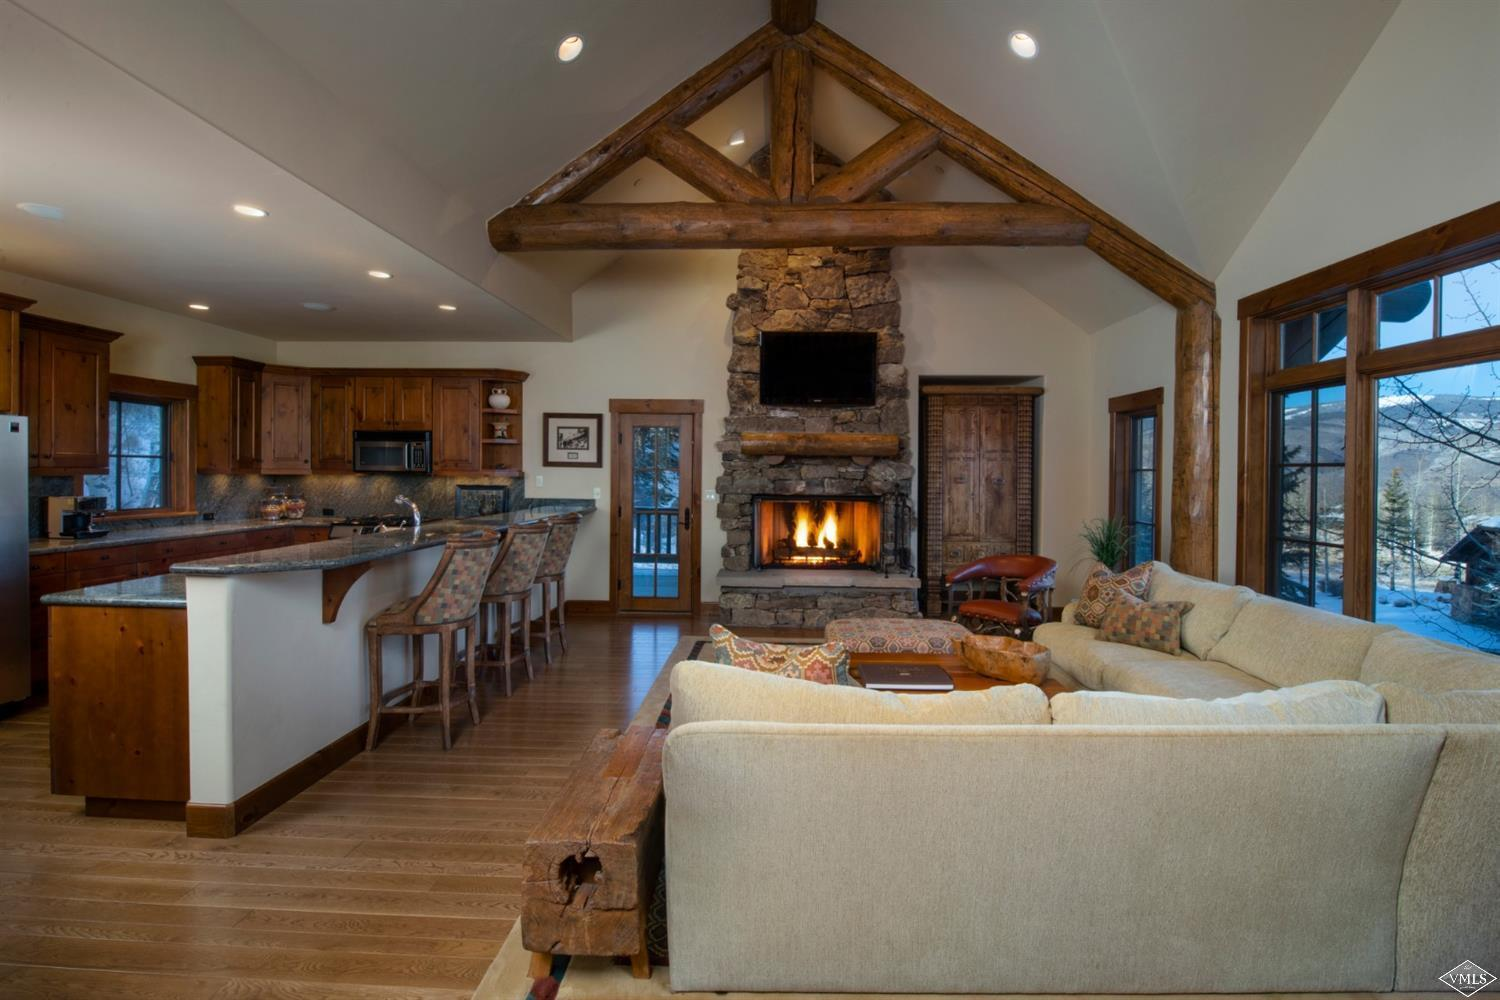 Opportunity to own the most reasonably priced single-family home within this exclusive resort offering panoramic views of the Gore Range and Game Creek Bowl. Easy ski access from Cold Snap ski-way with a comfortable open floorplan and over-sized family/game room. Main level master and three guests rooms on the lower level for separation and privacy. Two-car garage; private hot tub. Located in a small popular enclave.